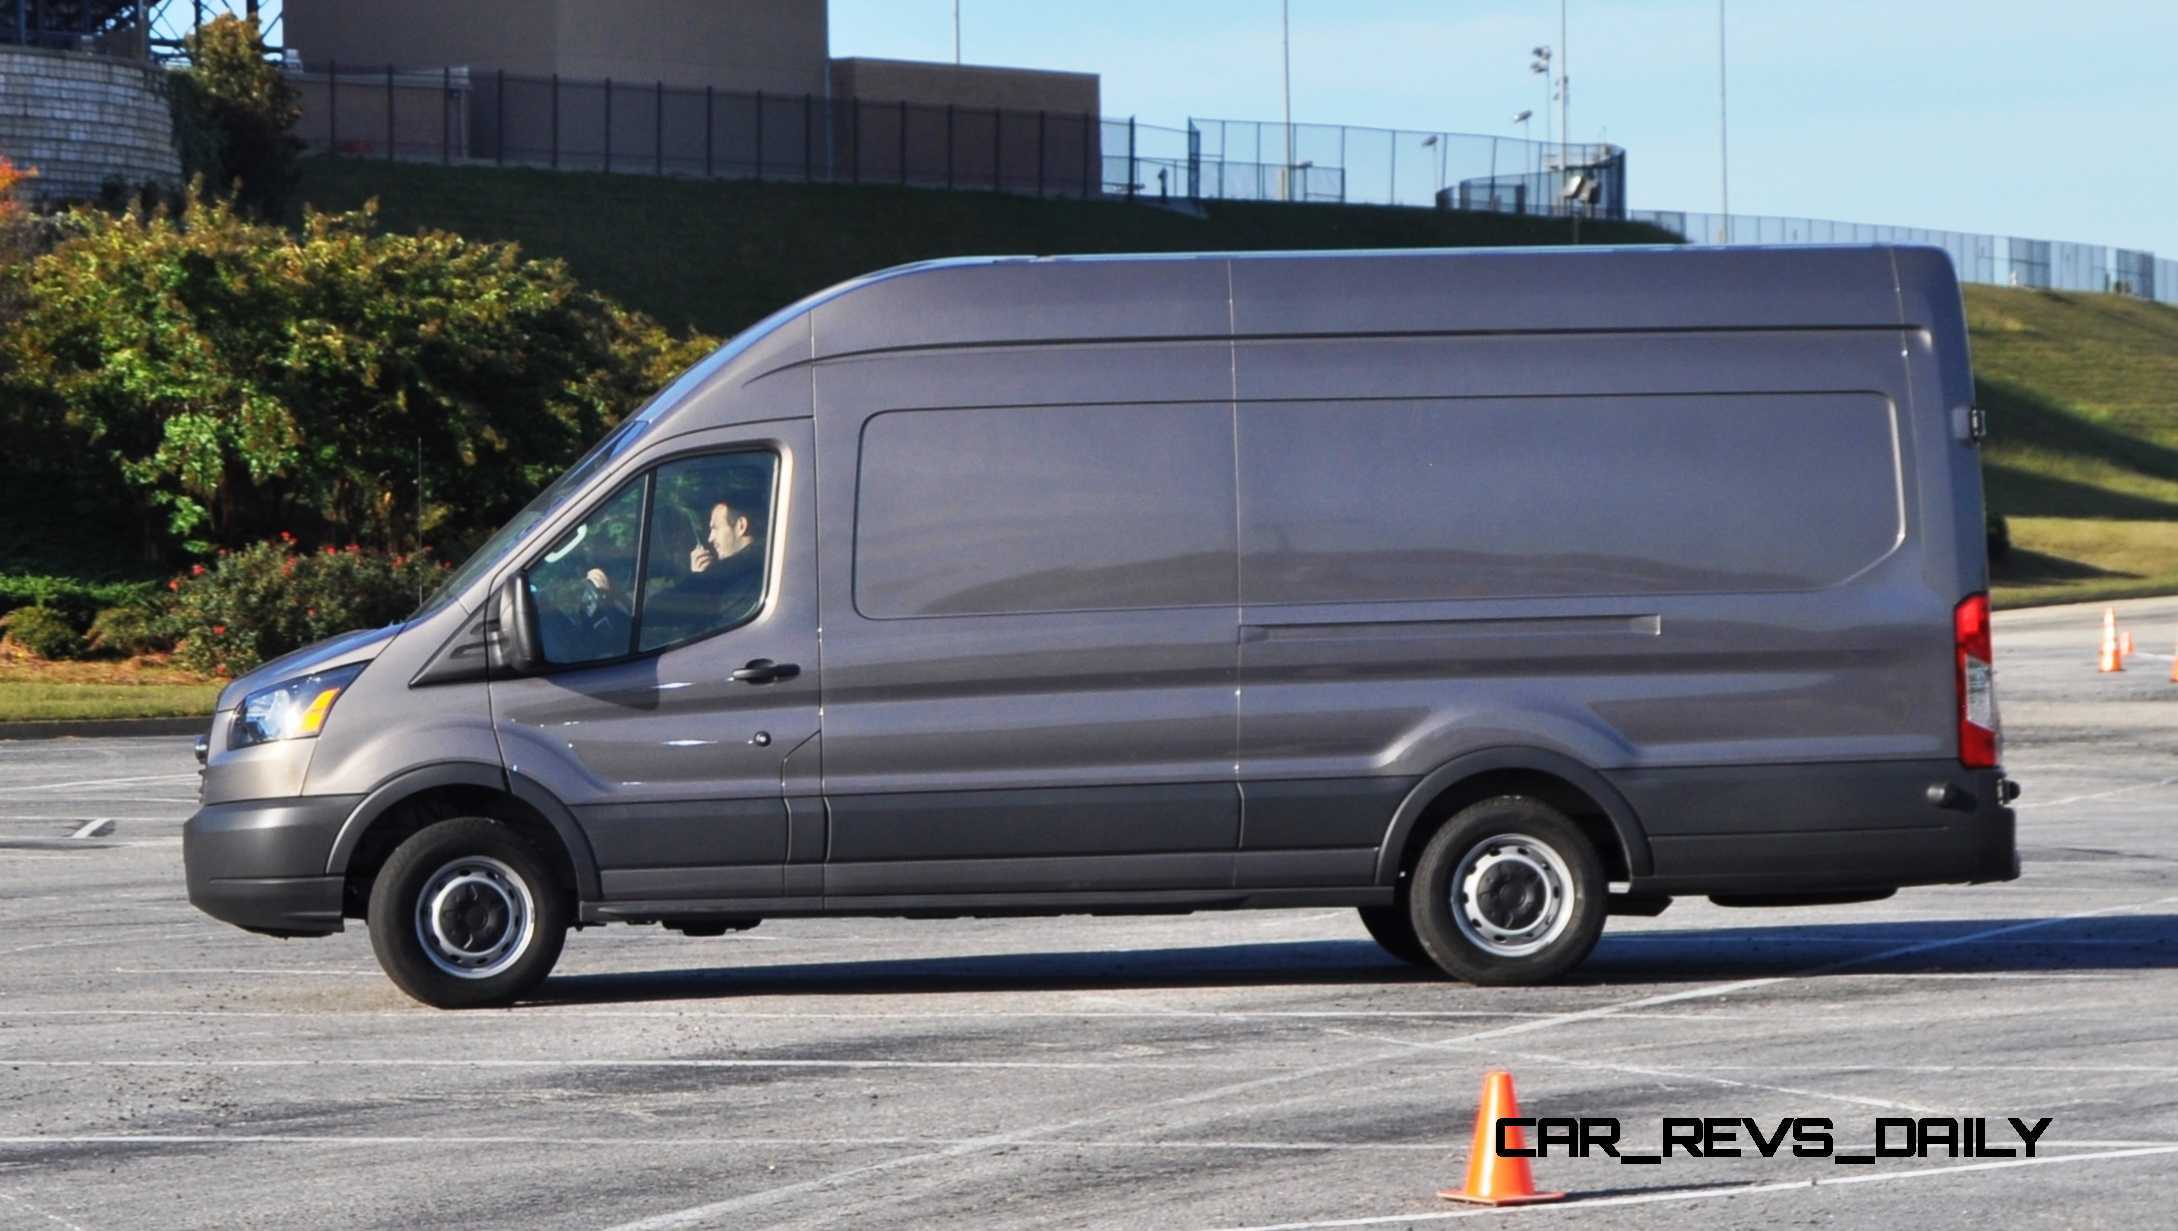 hd track drive review 2015 ford transit powerstroke diesel high roof long box cargo van 19. Black Bedroom Furniture Sets. Home Design Ideas